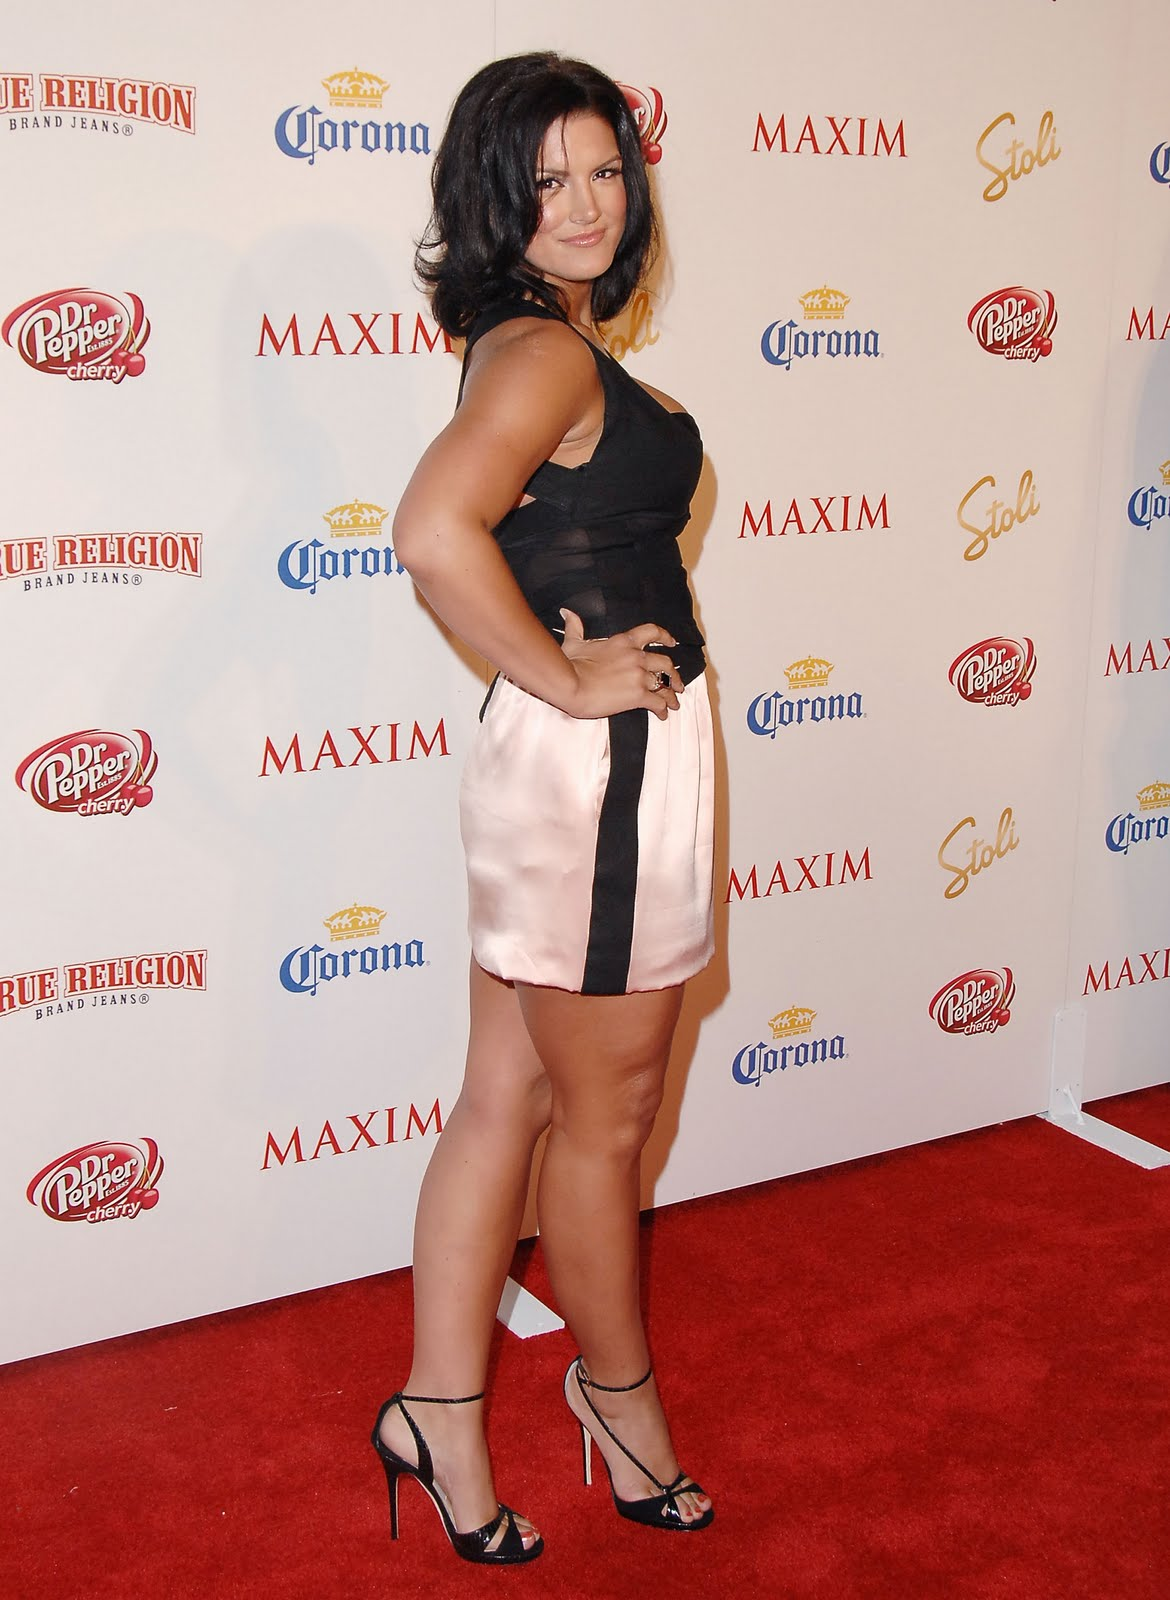 Feet Gina Carano naked (89 photos), Topless, Paparazzi, Feet, swimsuit 2015